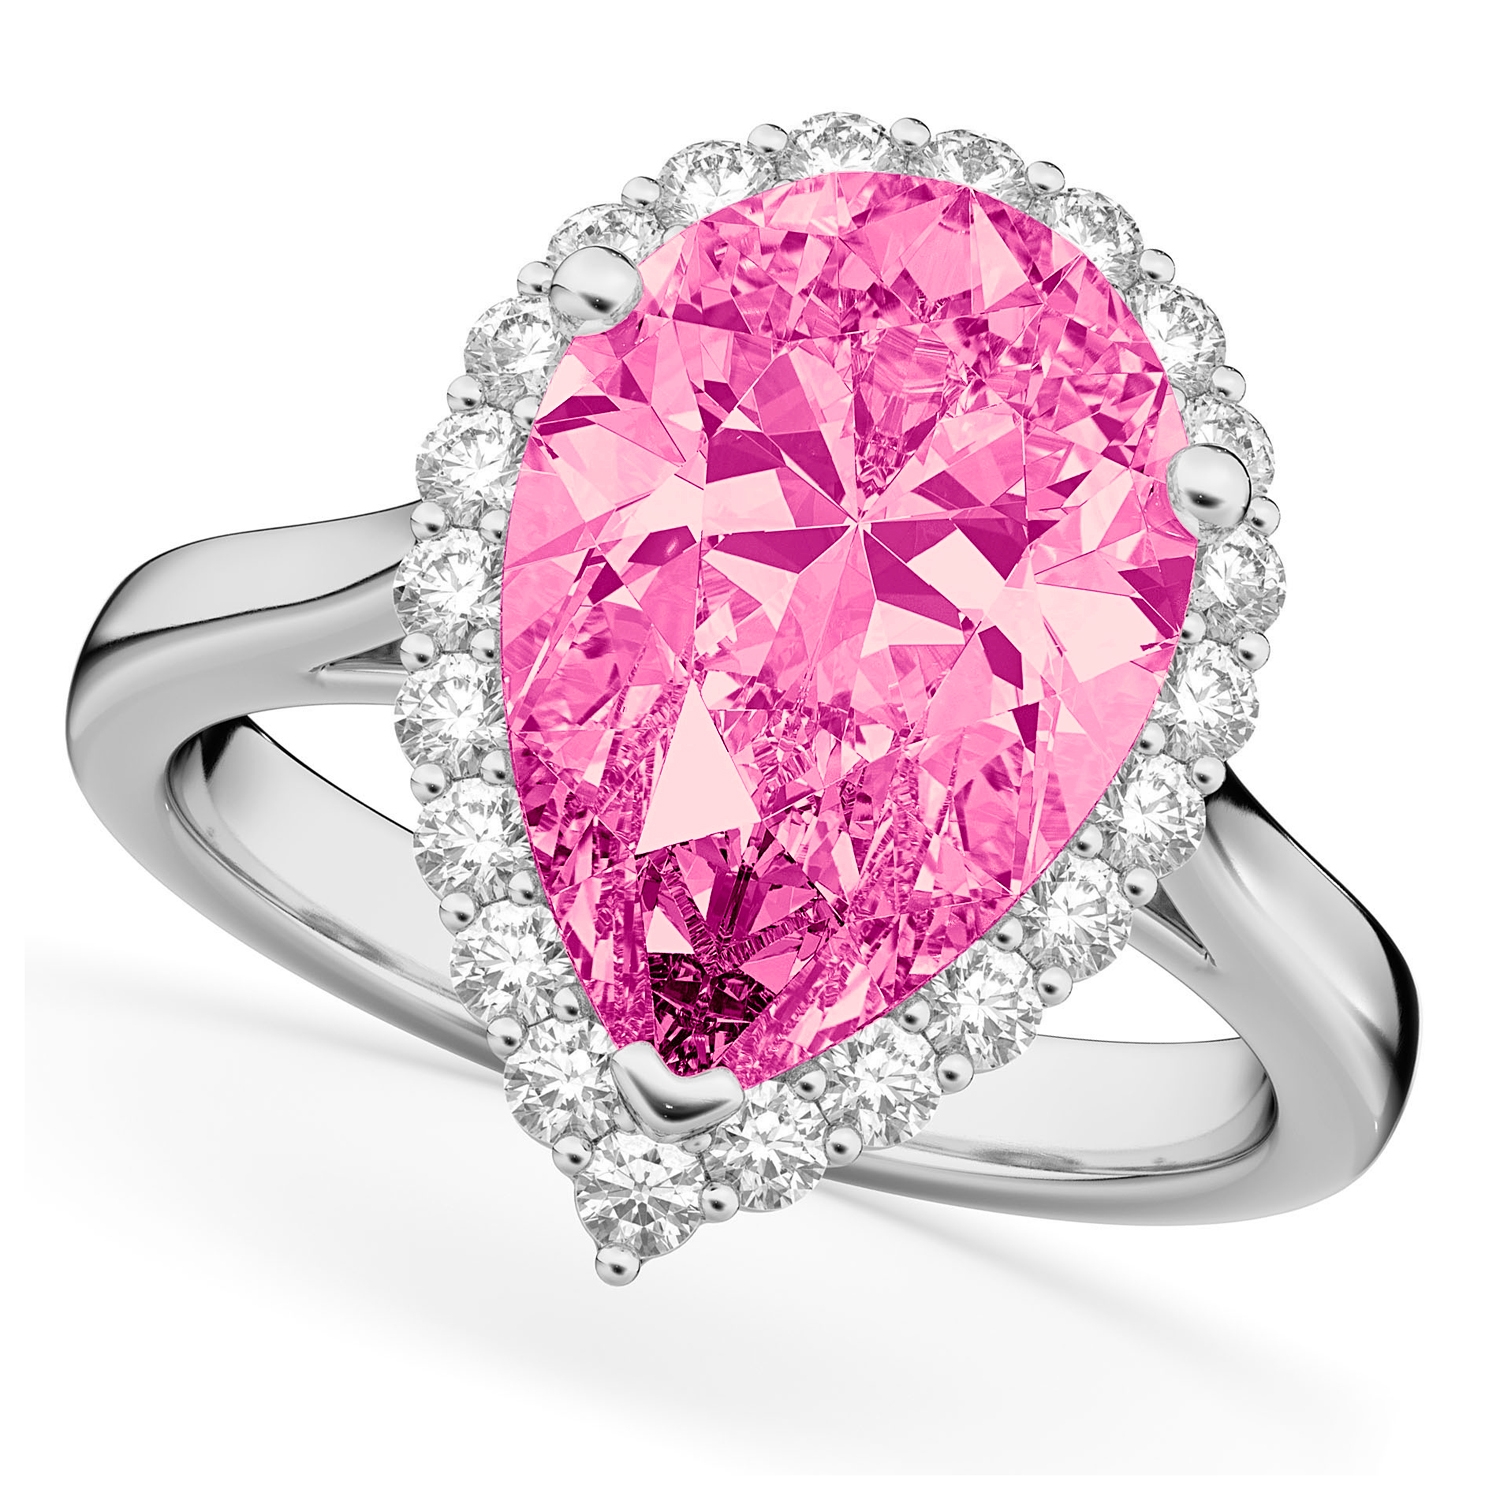 Pear Cut Halo Pink Tourmaline & Diamond Engagement Ring 14K White ...